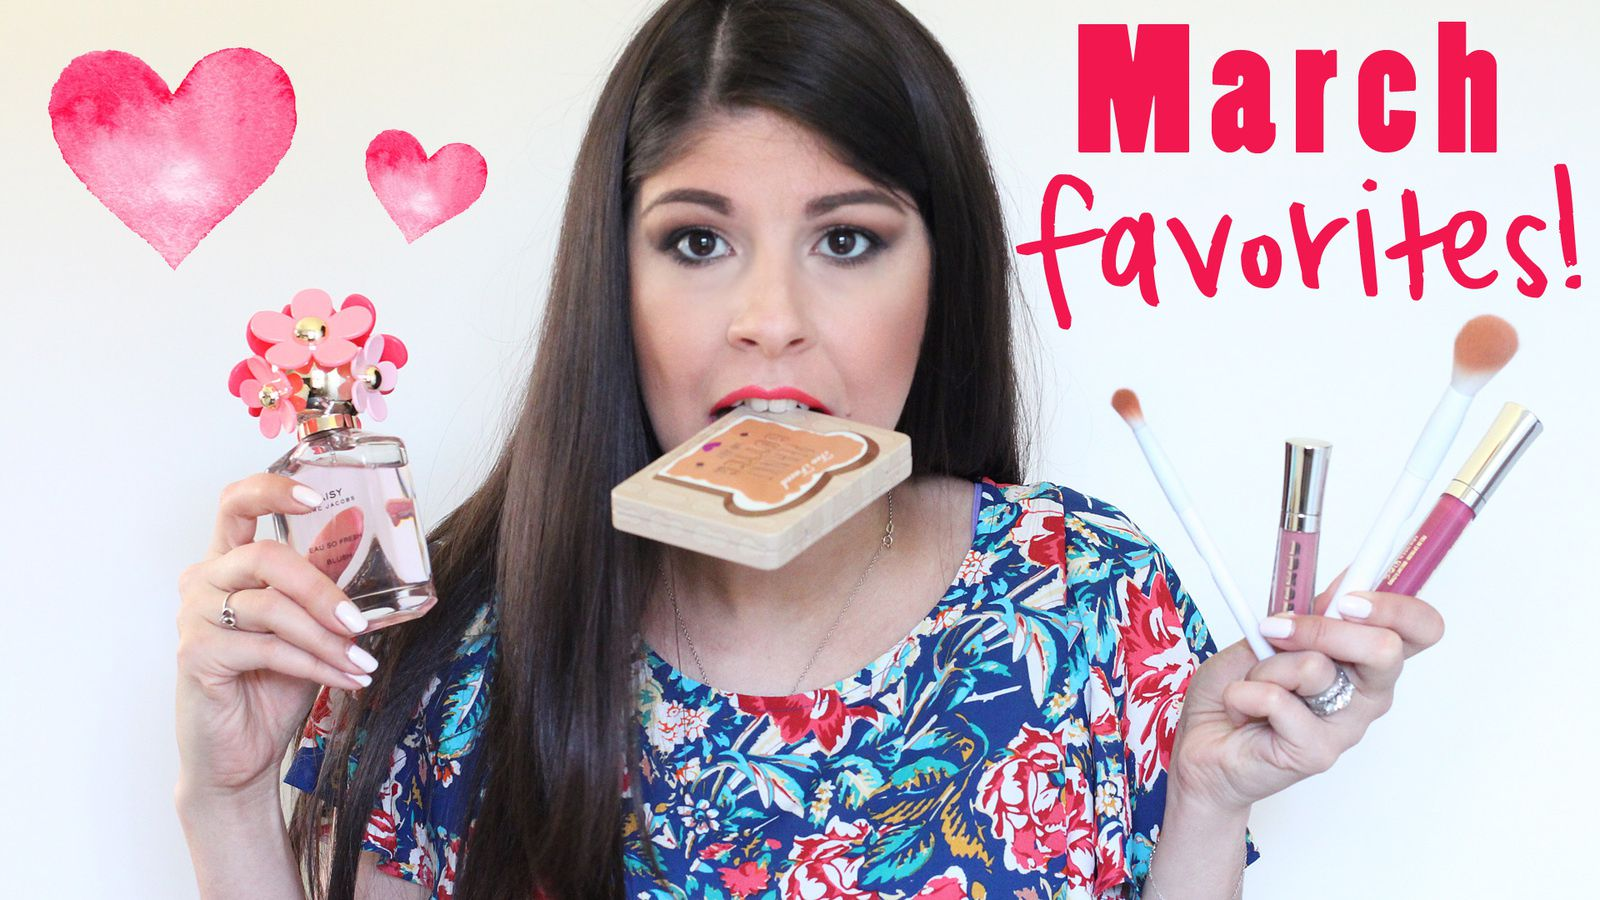 MARCH FAVORITES | Beauty Favorites 2016